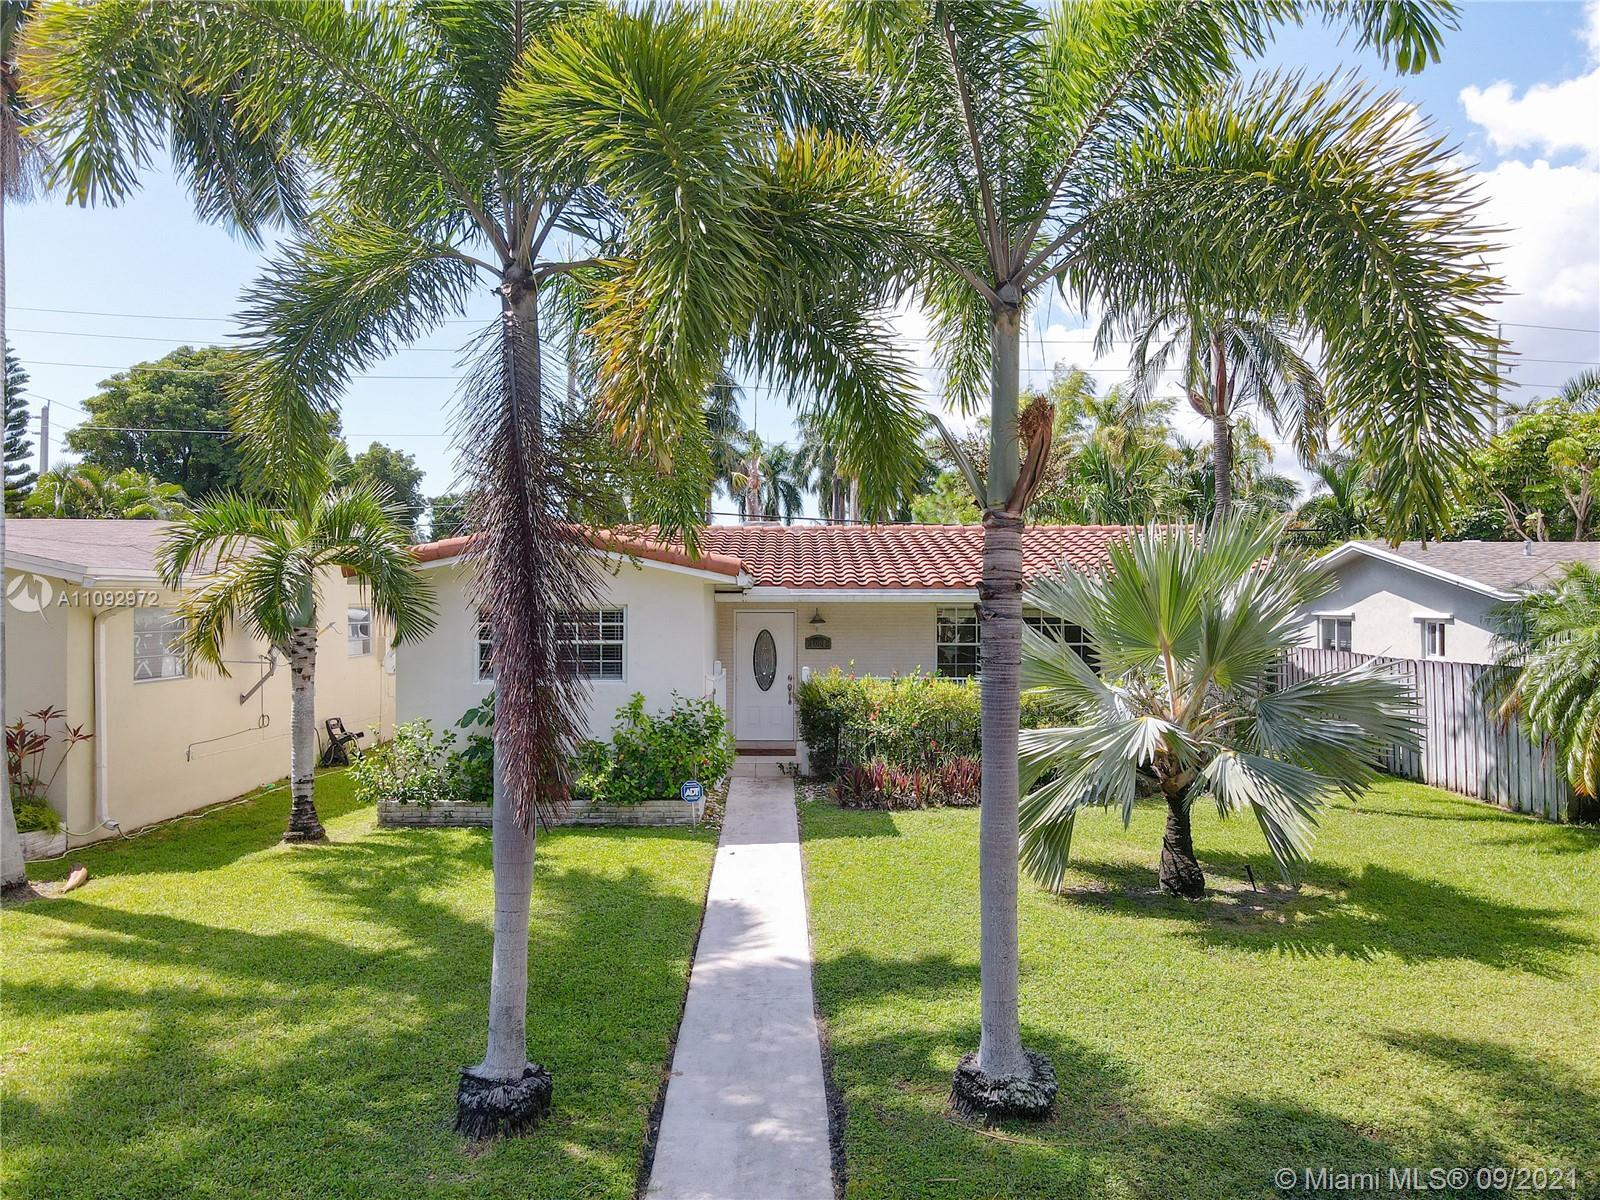 THIS IS IT -  UPDATED EVERYTHING! INCREDIBLE LOCATION FOR BOTH SALE AND RENTAL DEMAND! - THIS EAST H